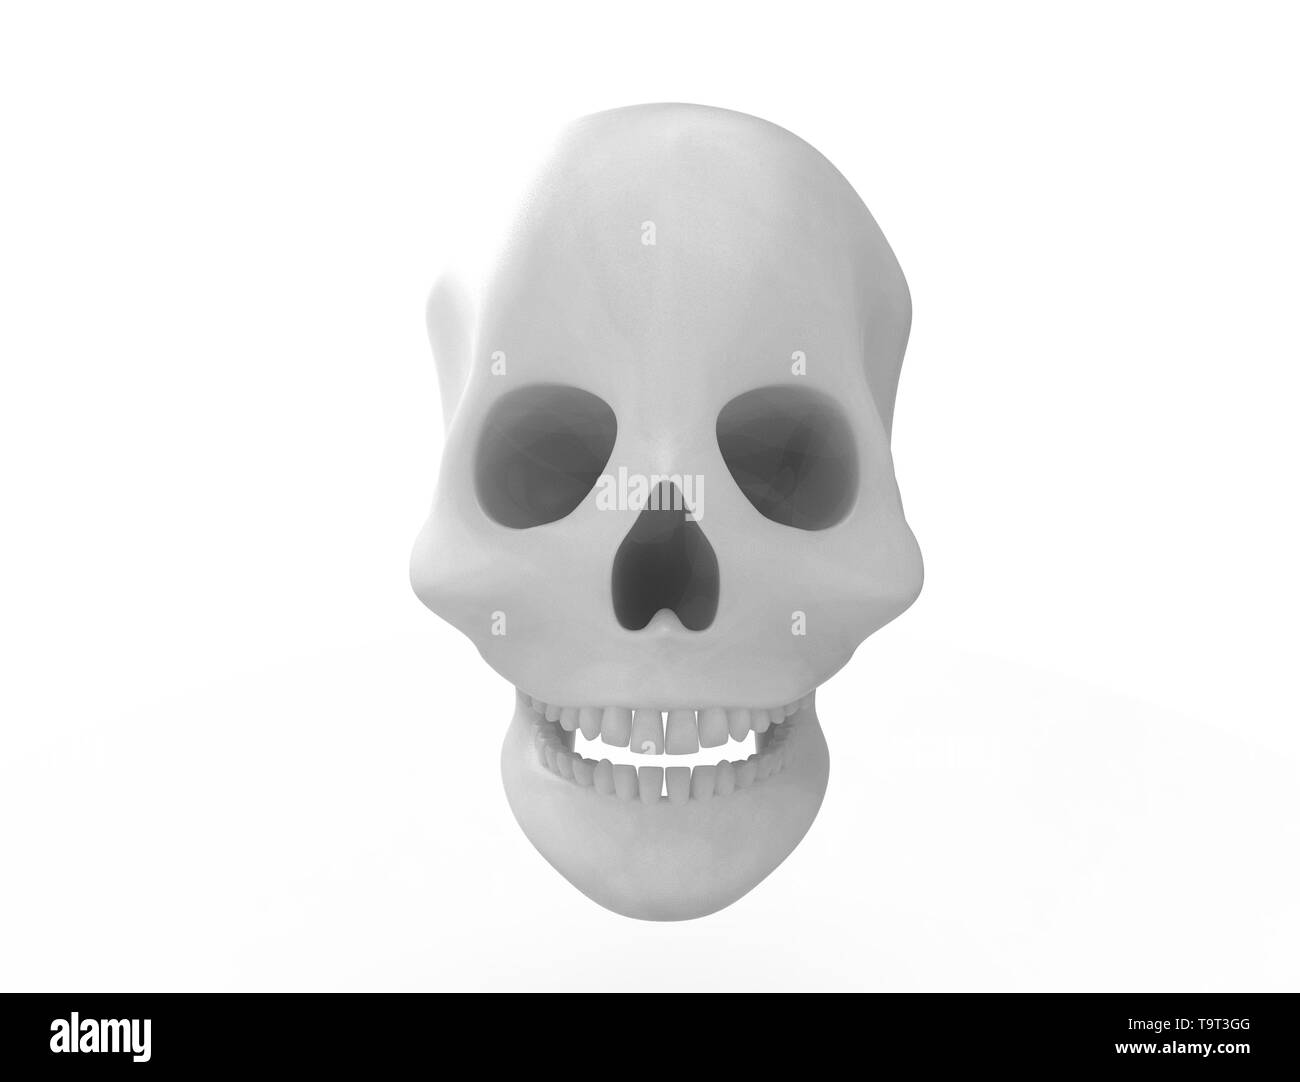 3D rendering of a skull isolated on white background. Stock Photo